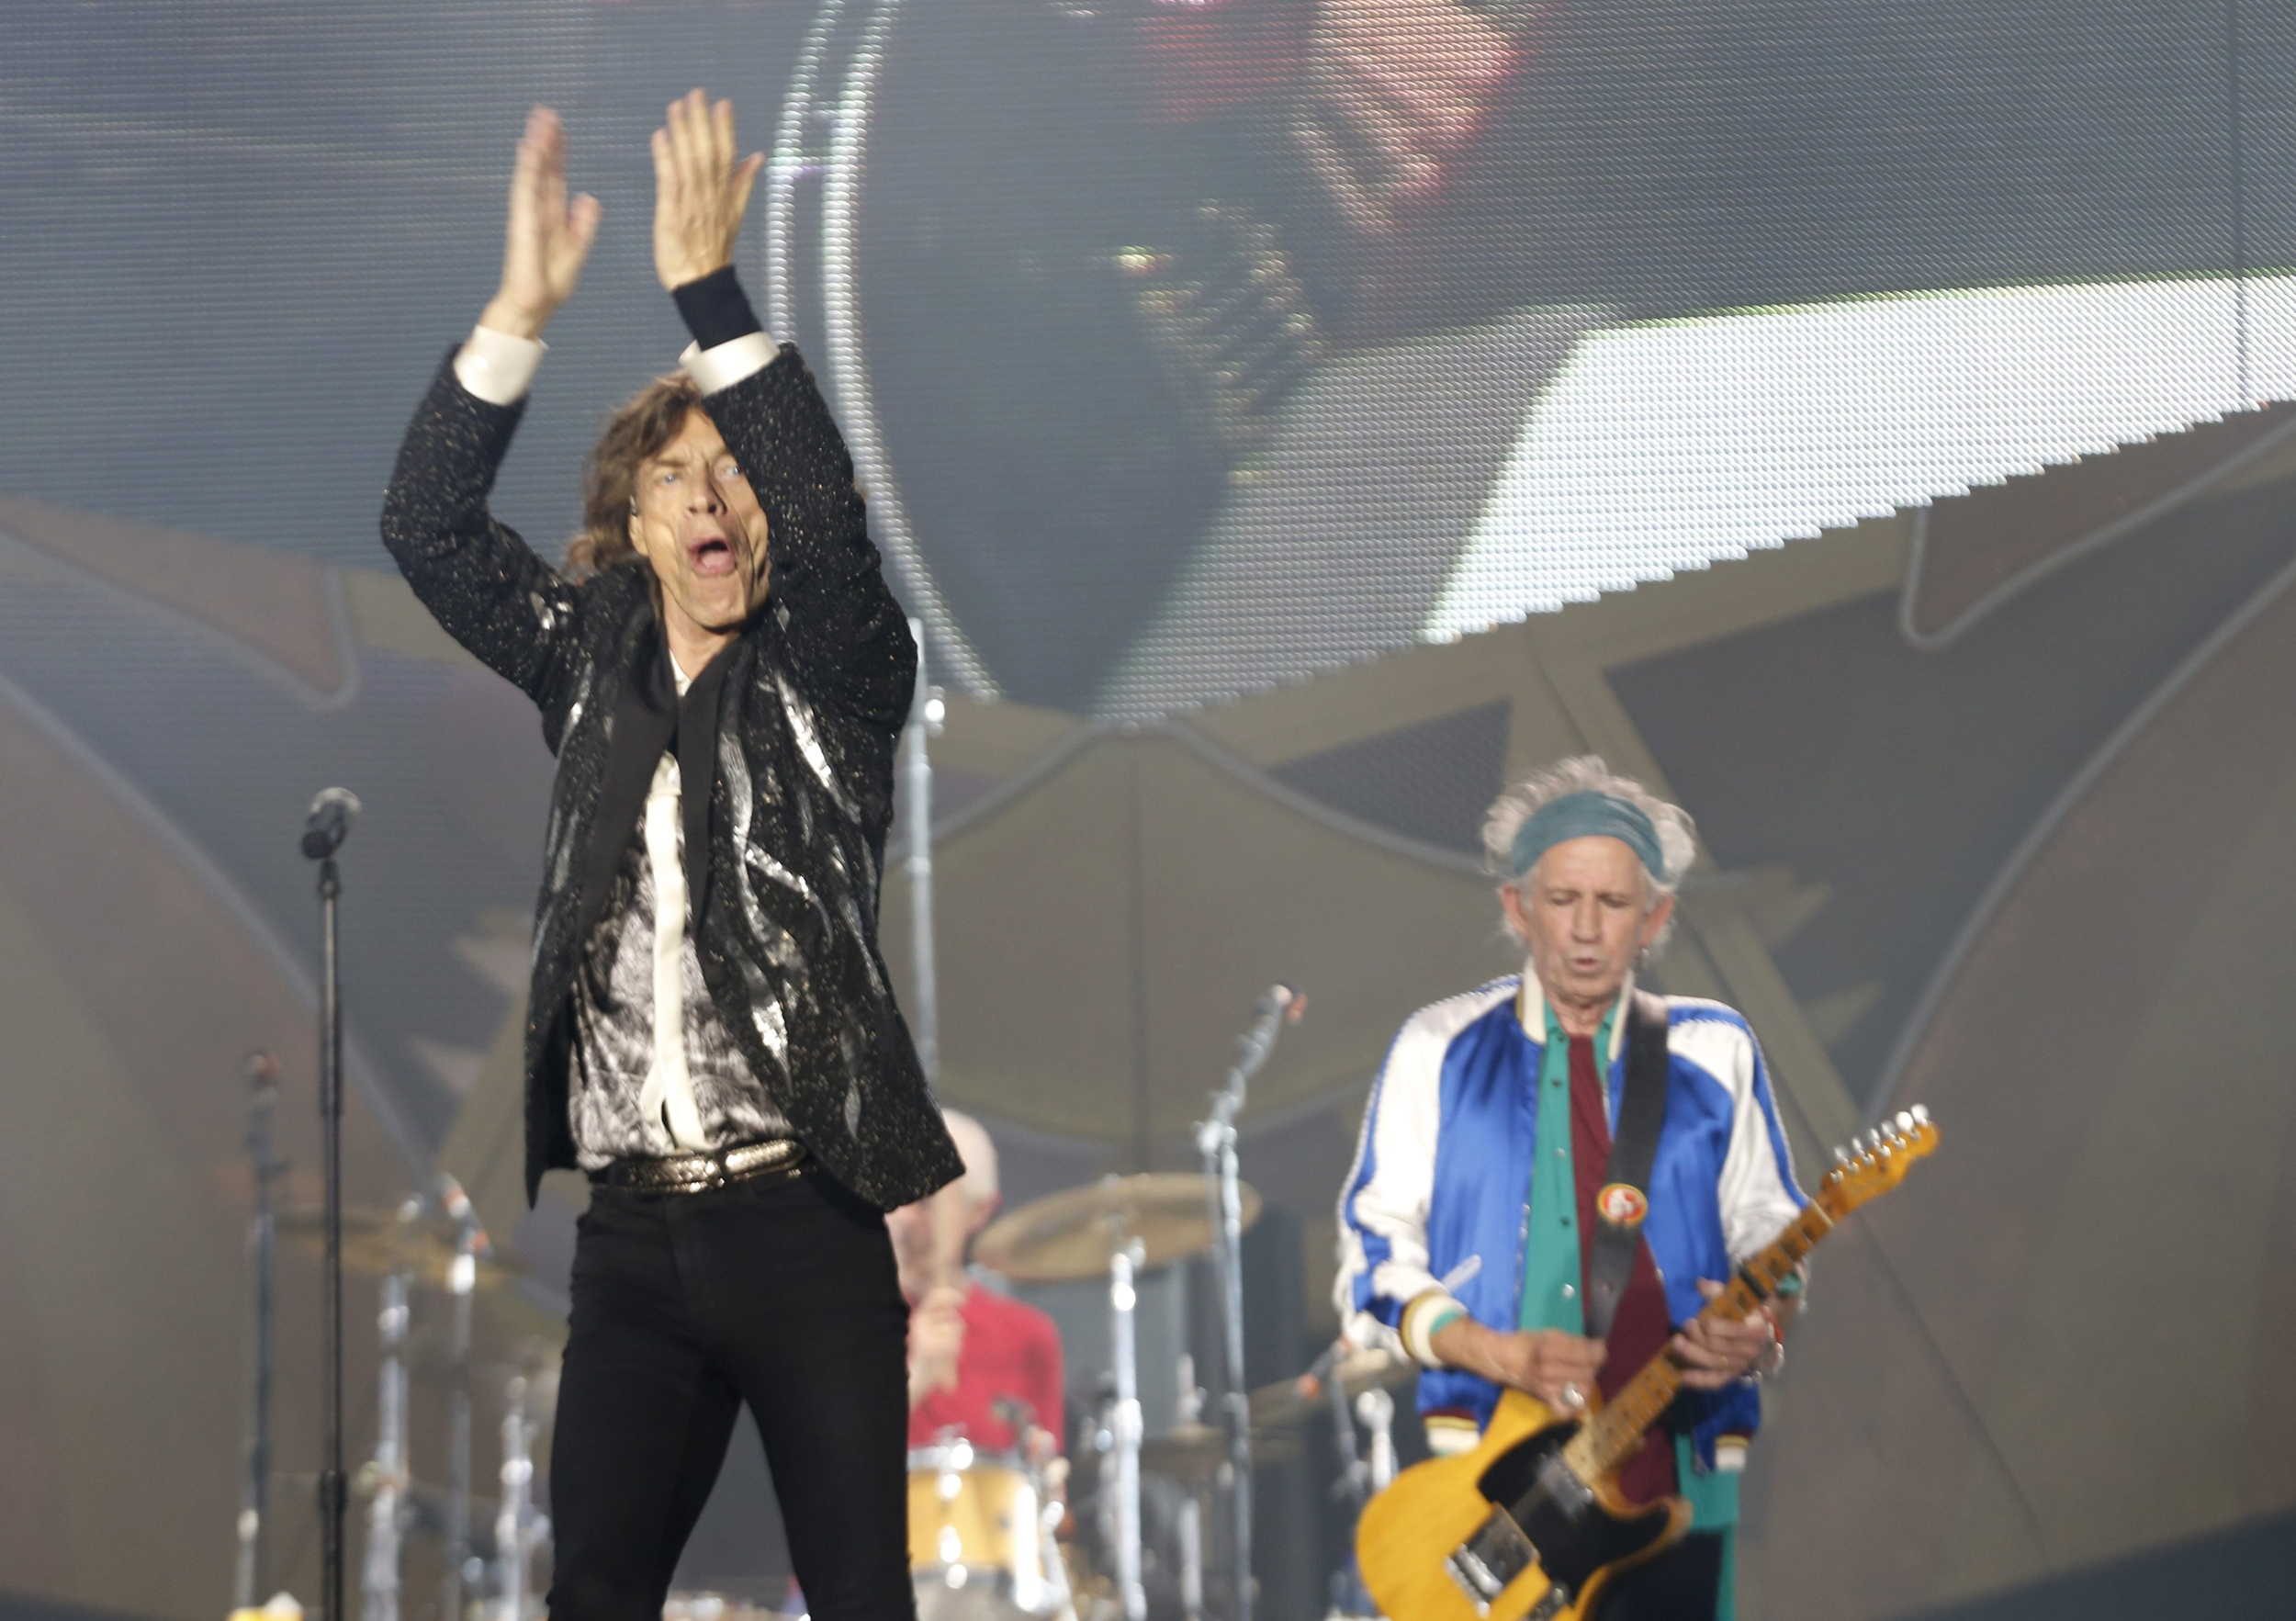 Stones rock out: Mick Jagger, left; Keith Richards, right; and  Charlie Watts, behind, perform during a Rolling Stones concert near Oslo, Norway, on Monday.